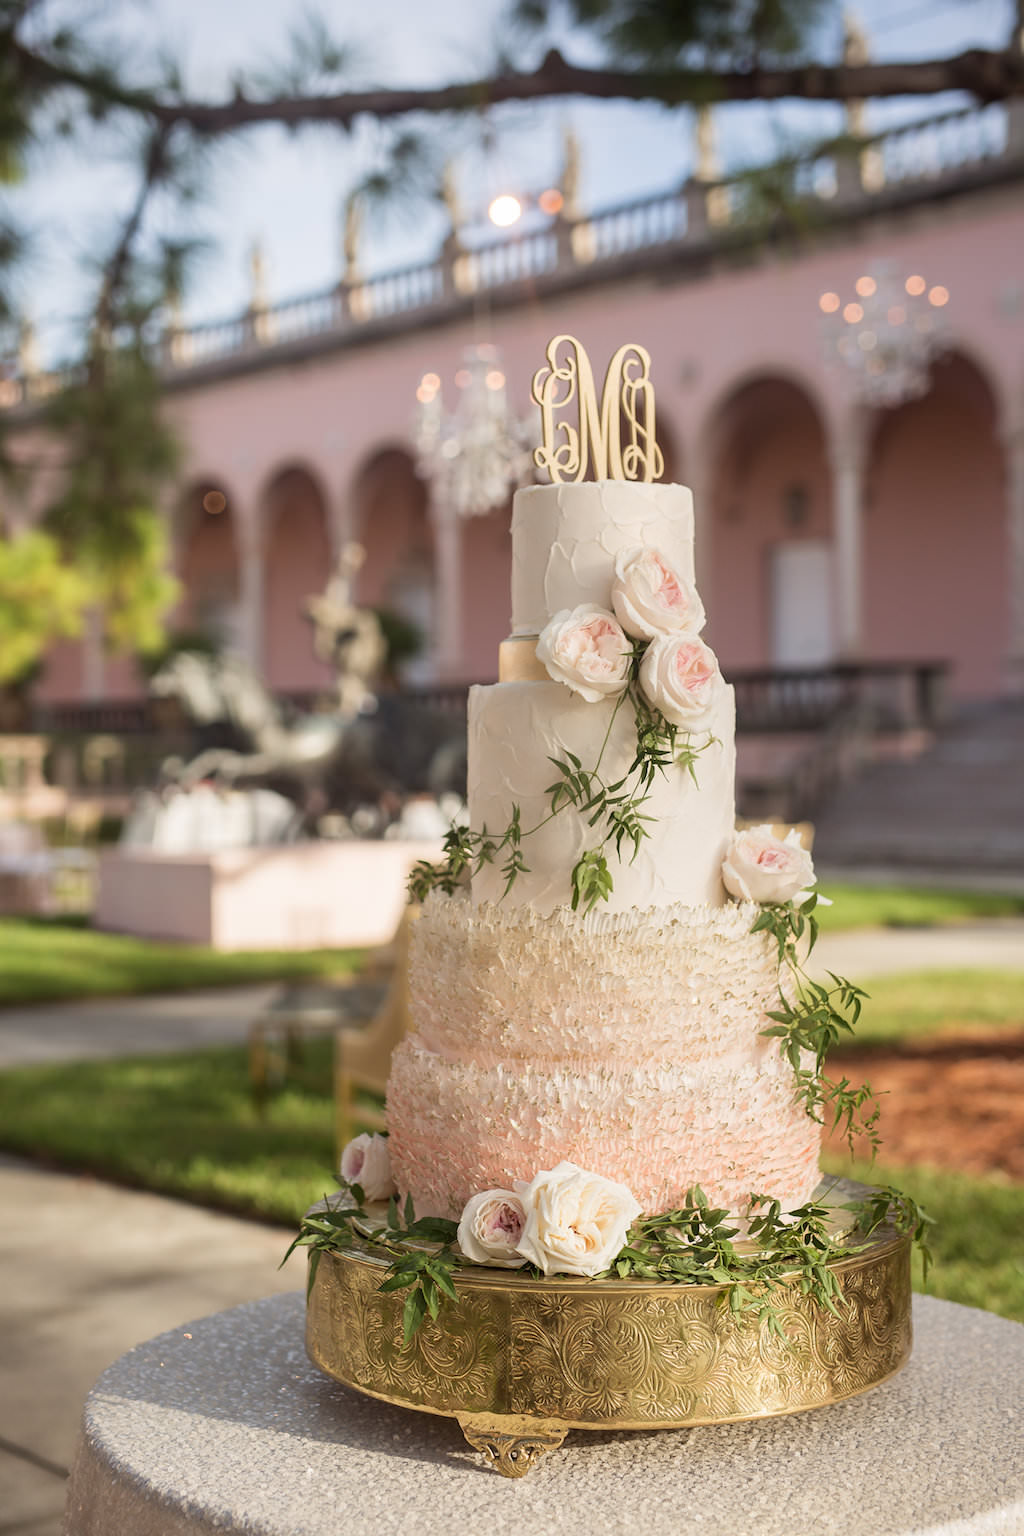 Four Tier Round Blush Pink and White Ombre Ruffled Wedding Cake with Gold Monogram Initial Topper